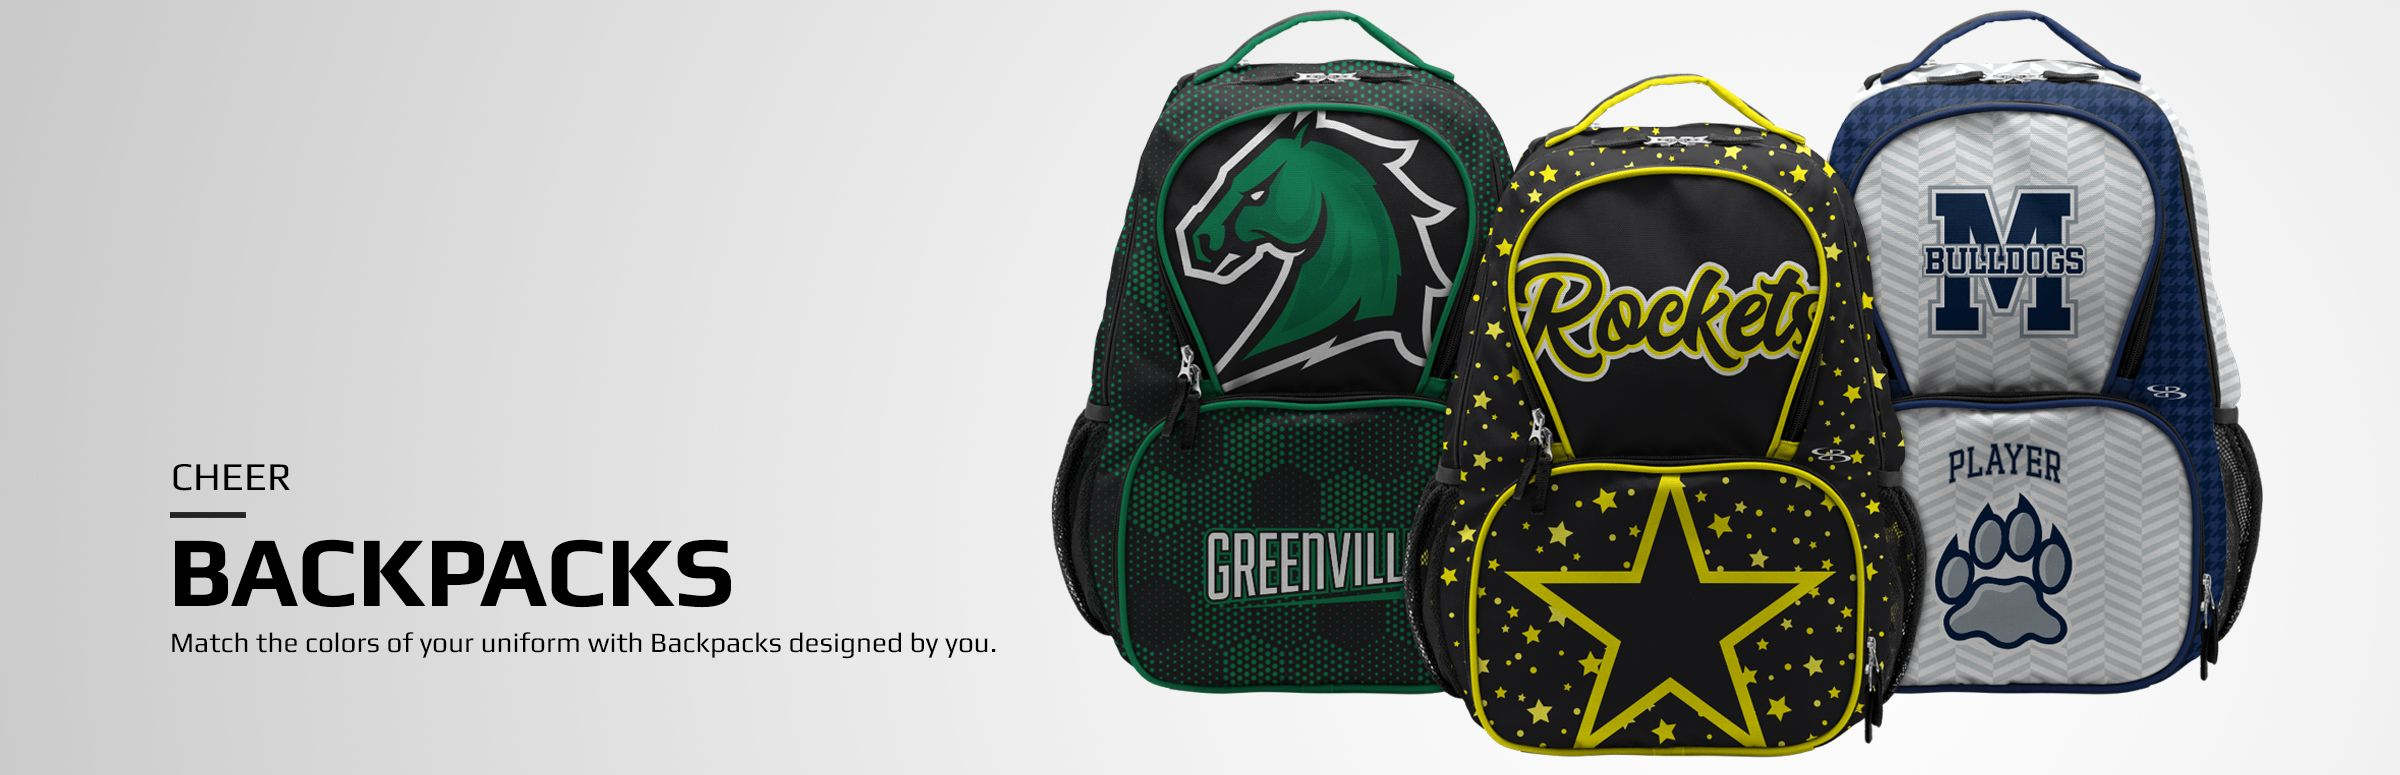 Cheer Backpacks